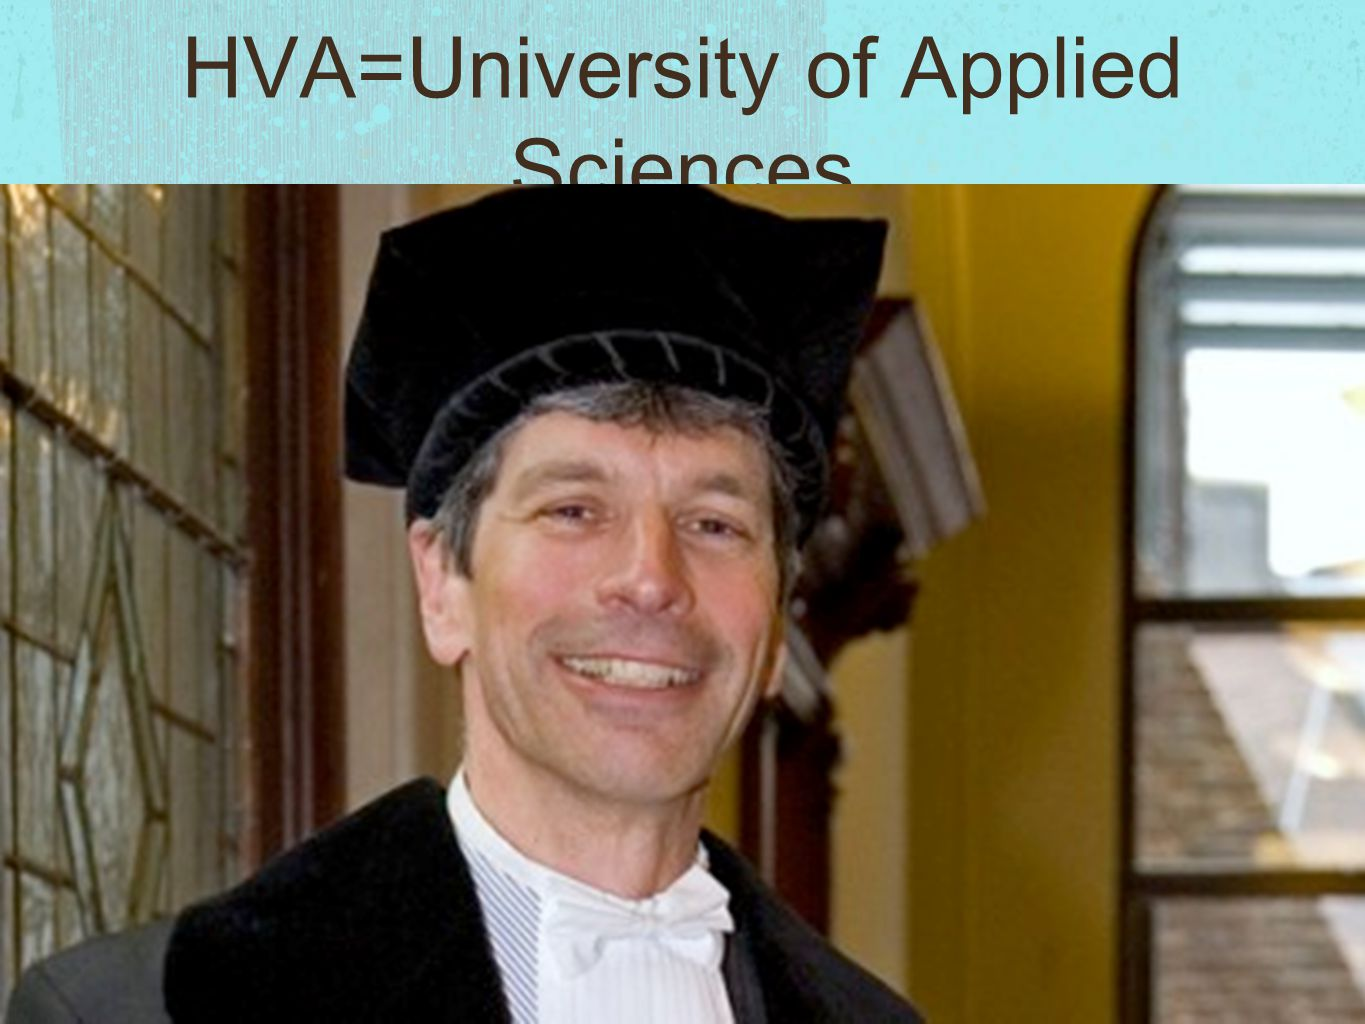 HVA=University of Applied Sciences